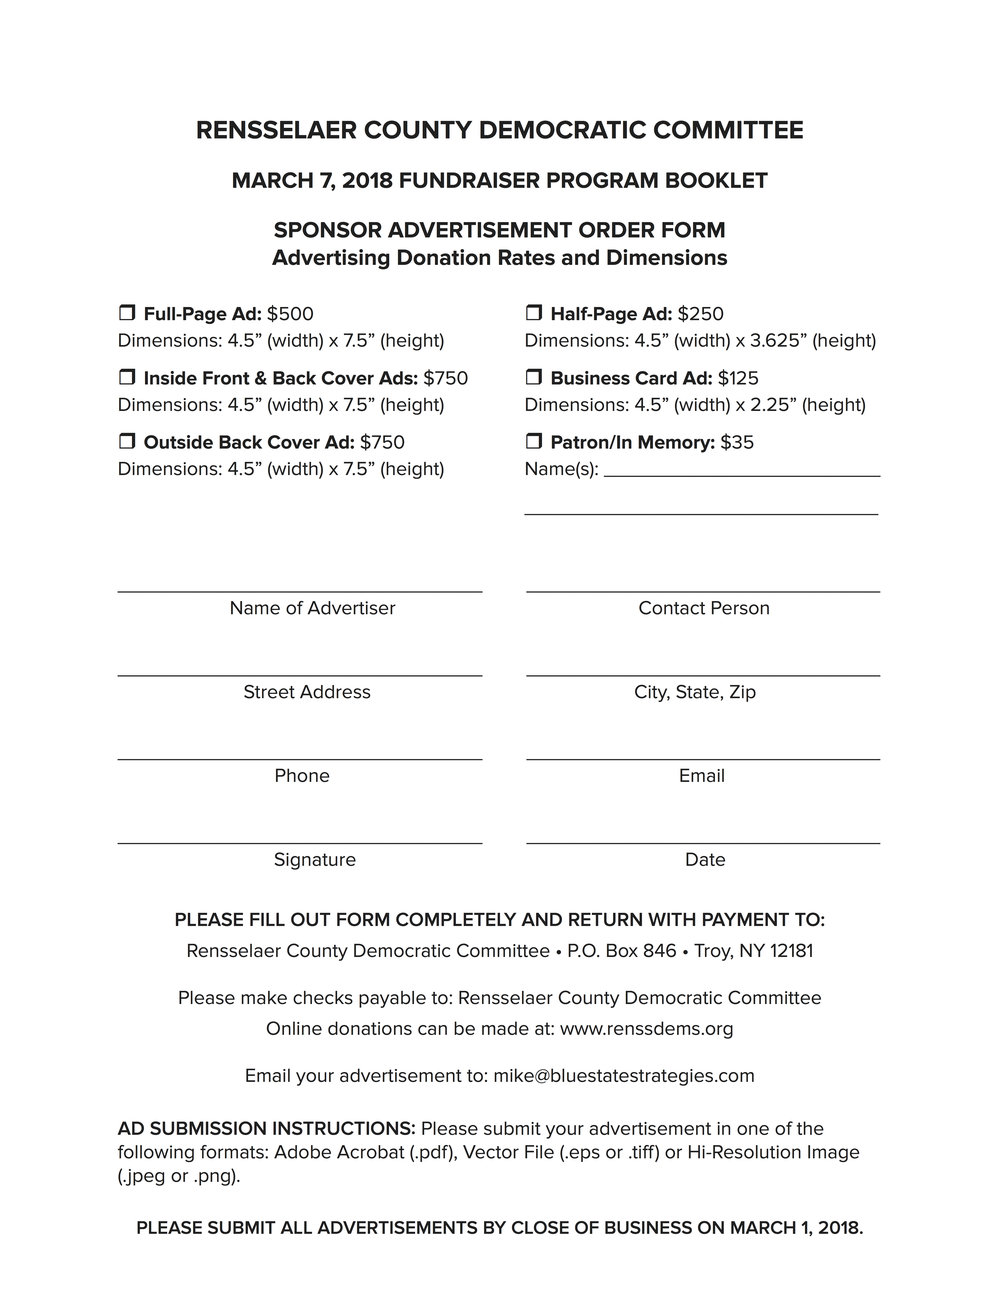 RCDC March 7 2018 Fundraiser Ad Order Form.jpg